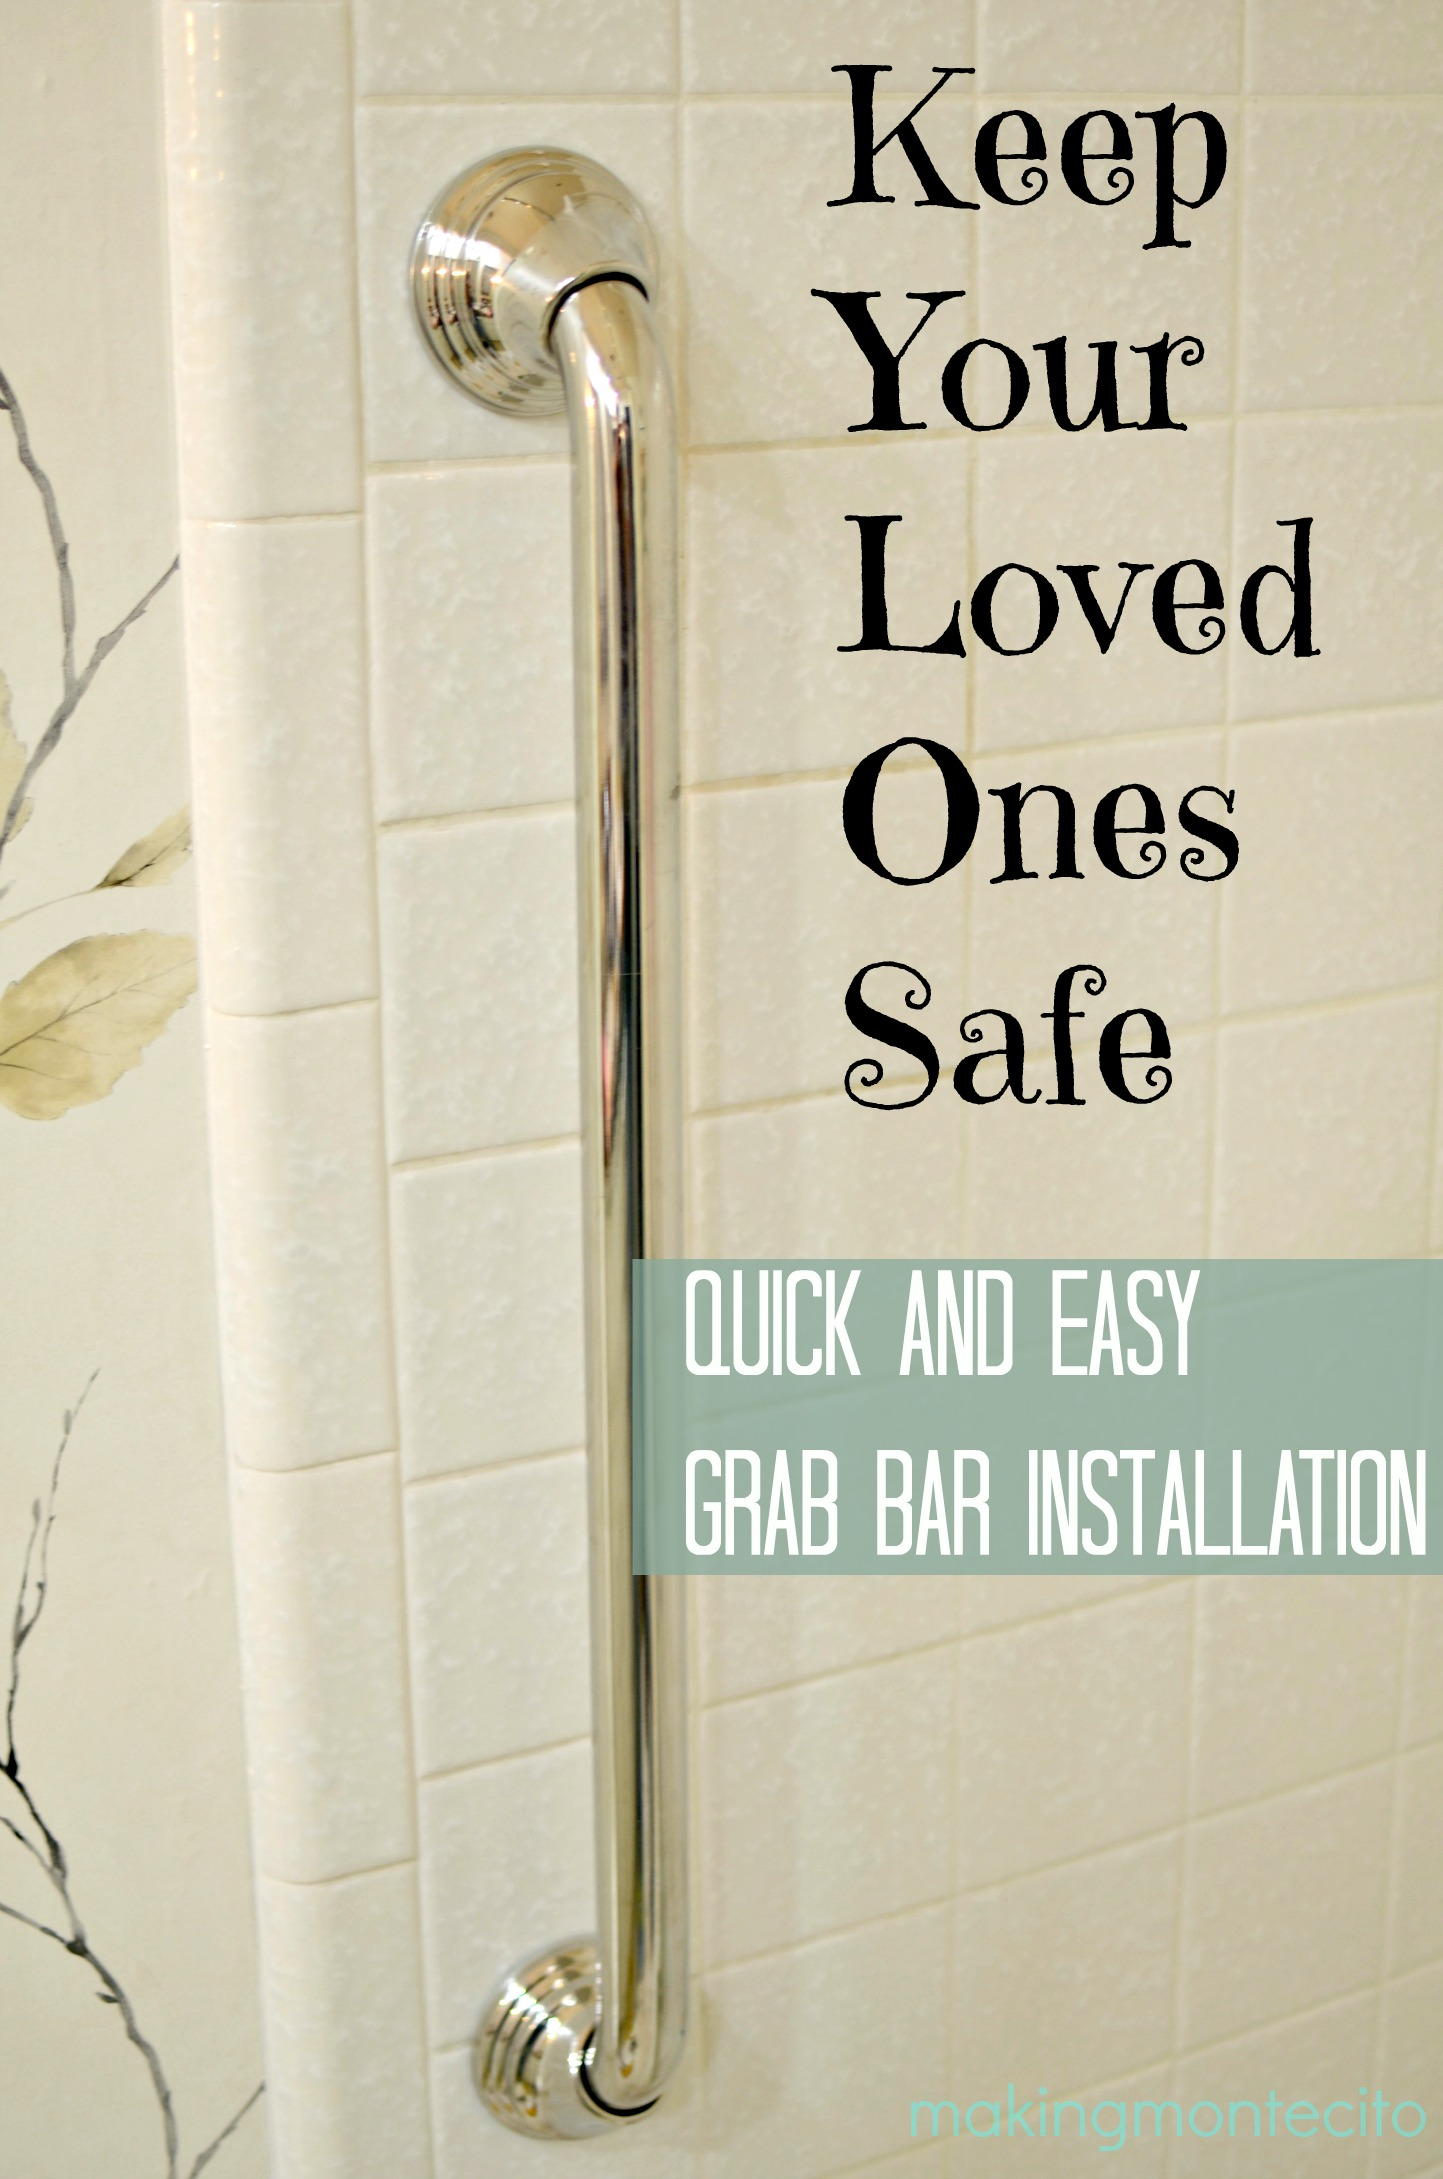 Installing Grab Bars in the Shower - Making Montecito